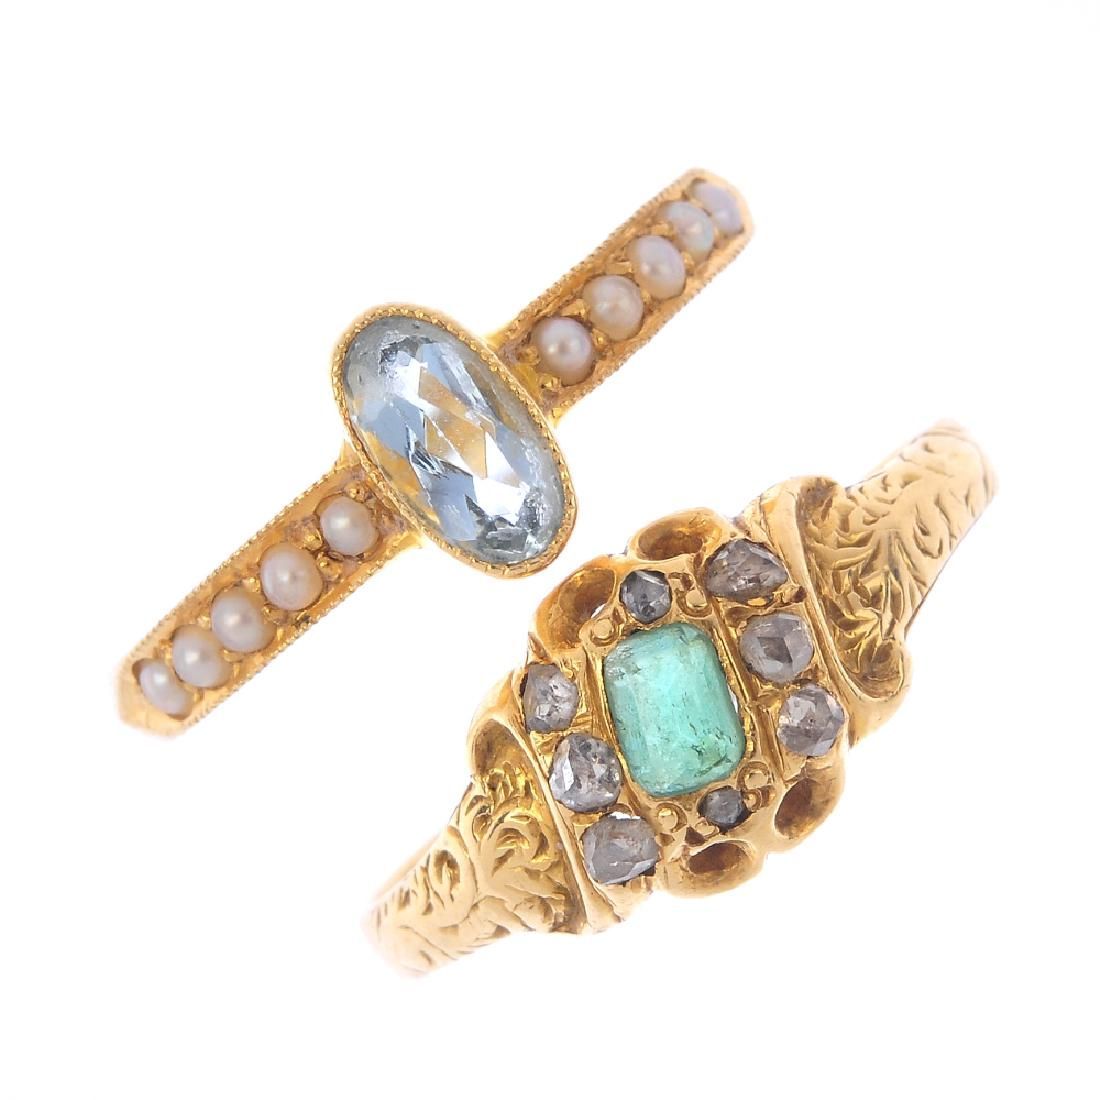 Two early 20th century gold gem-set rings. To include a